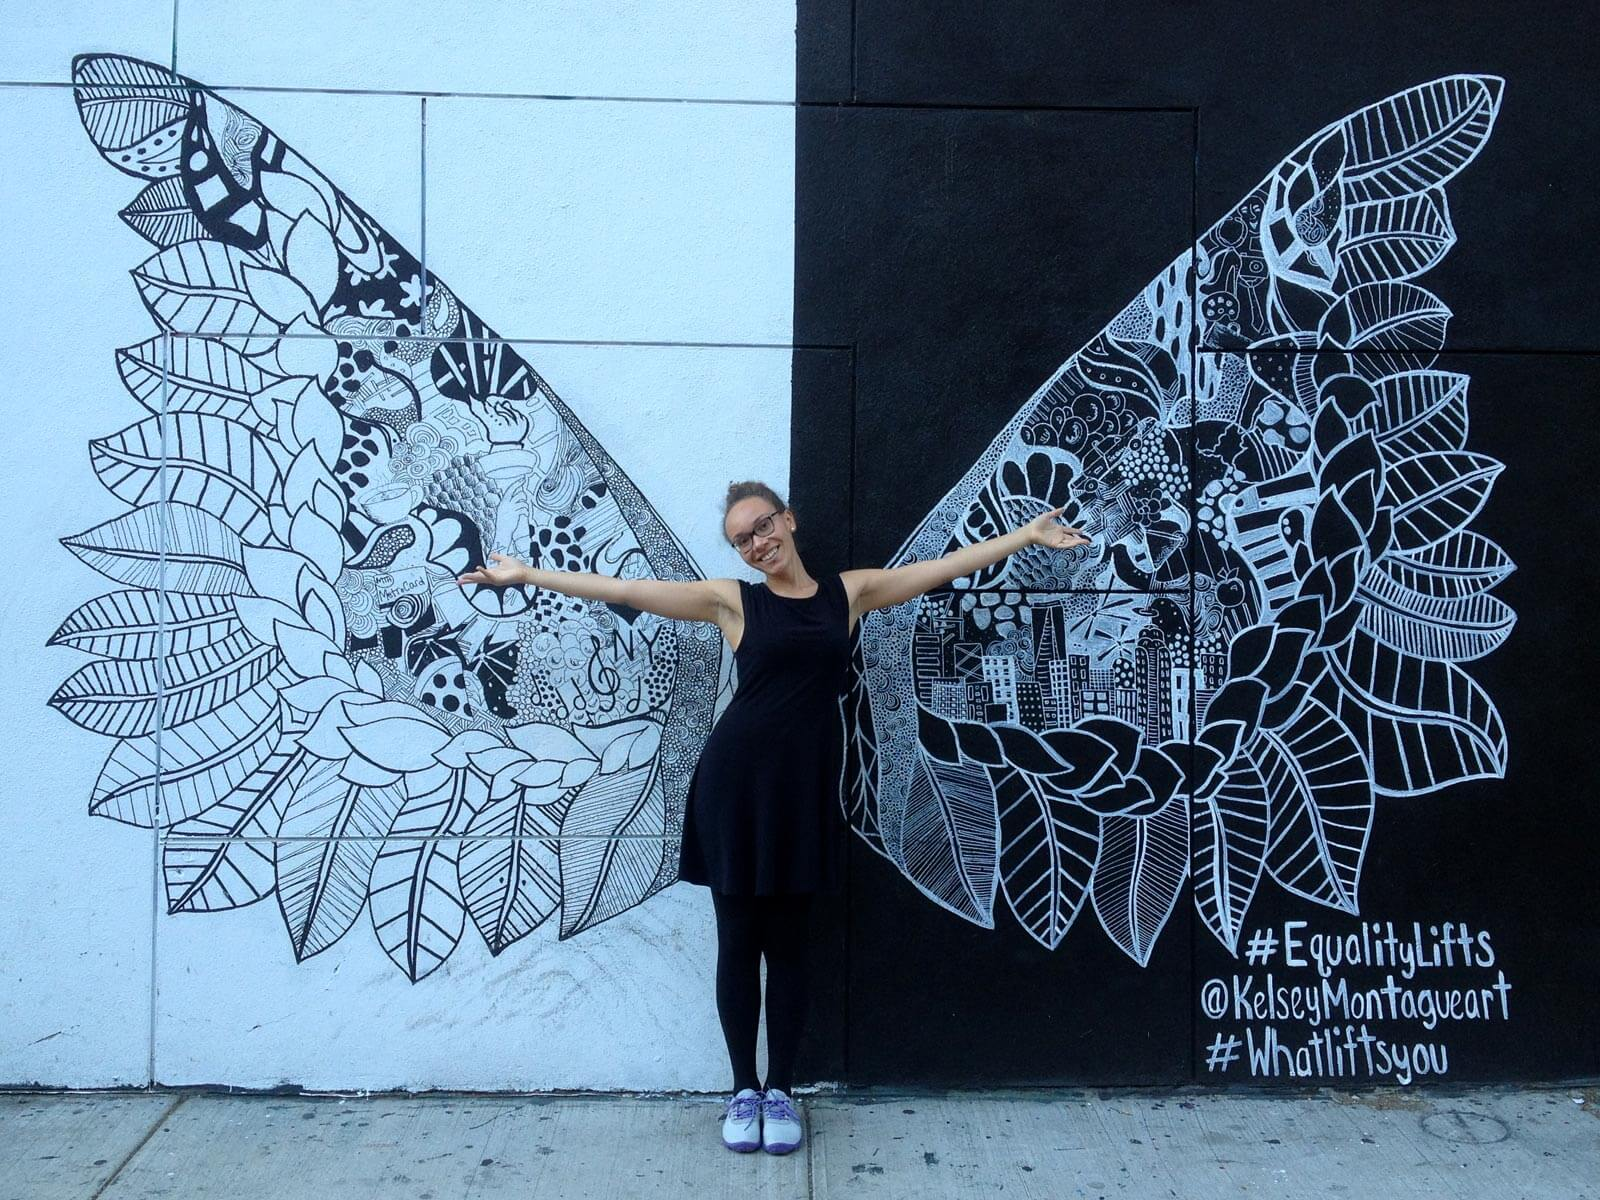 Malina vor Street Art-Schmetterling in New York